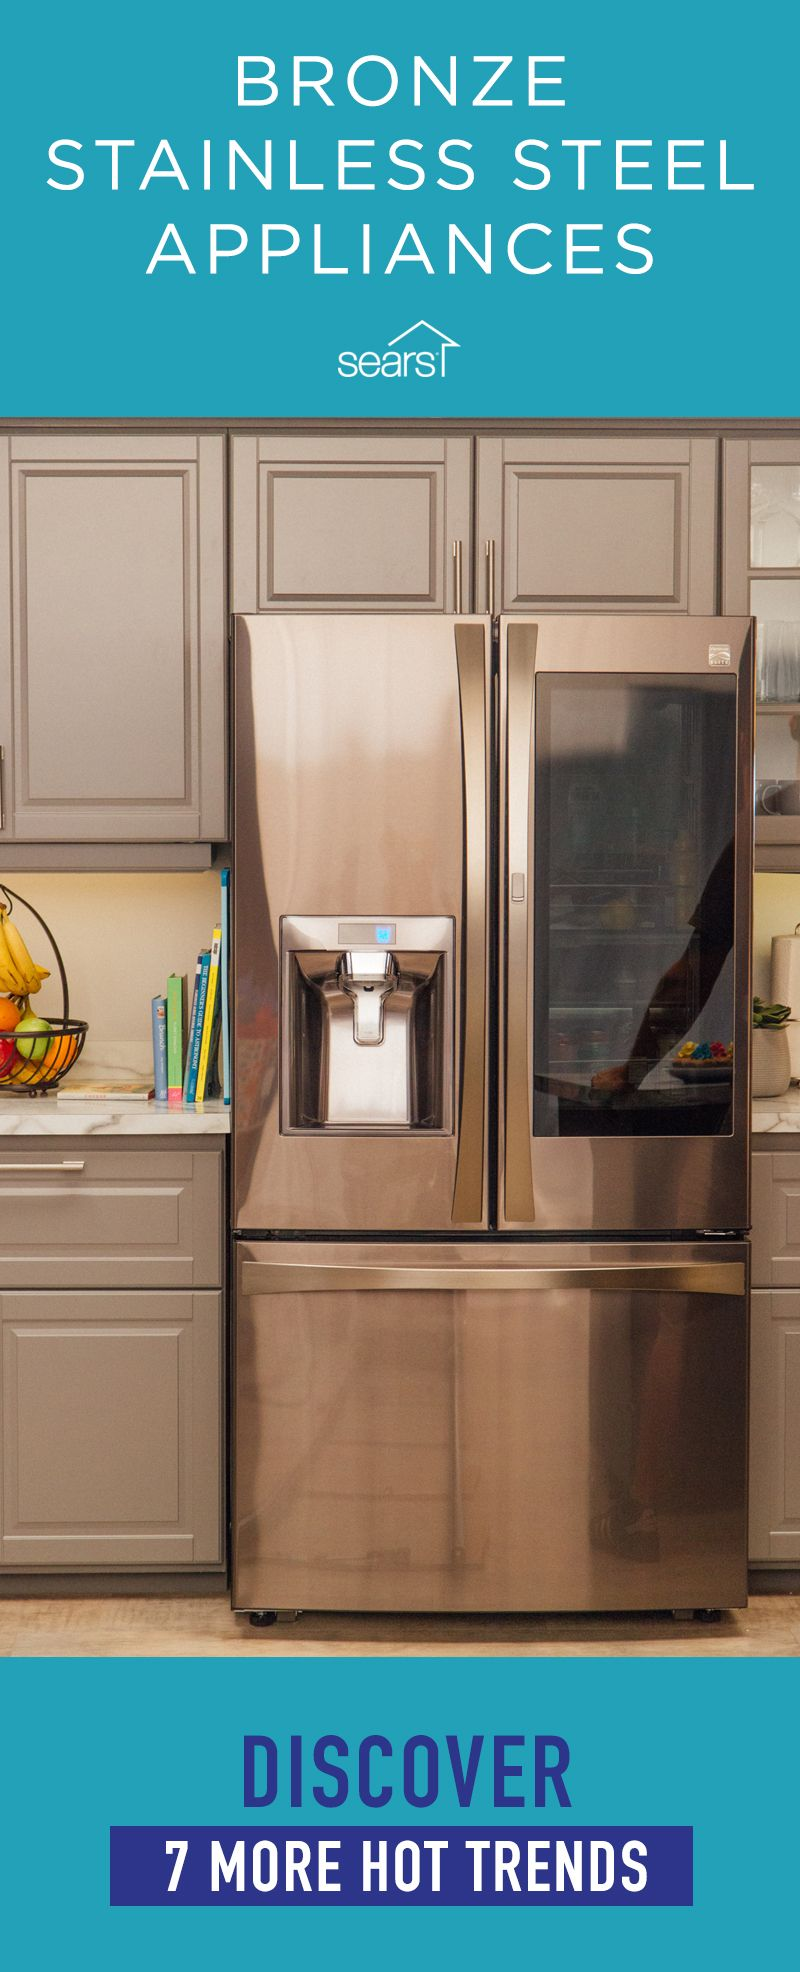 Bronze Stainless Steel Appliances Are Just One Of This Year S Hot Appliance Trends Appliances Are Remodel Kitchen Appliances Appliances Design Copper Kitchen